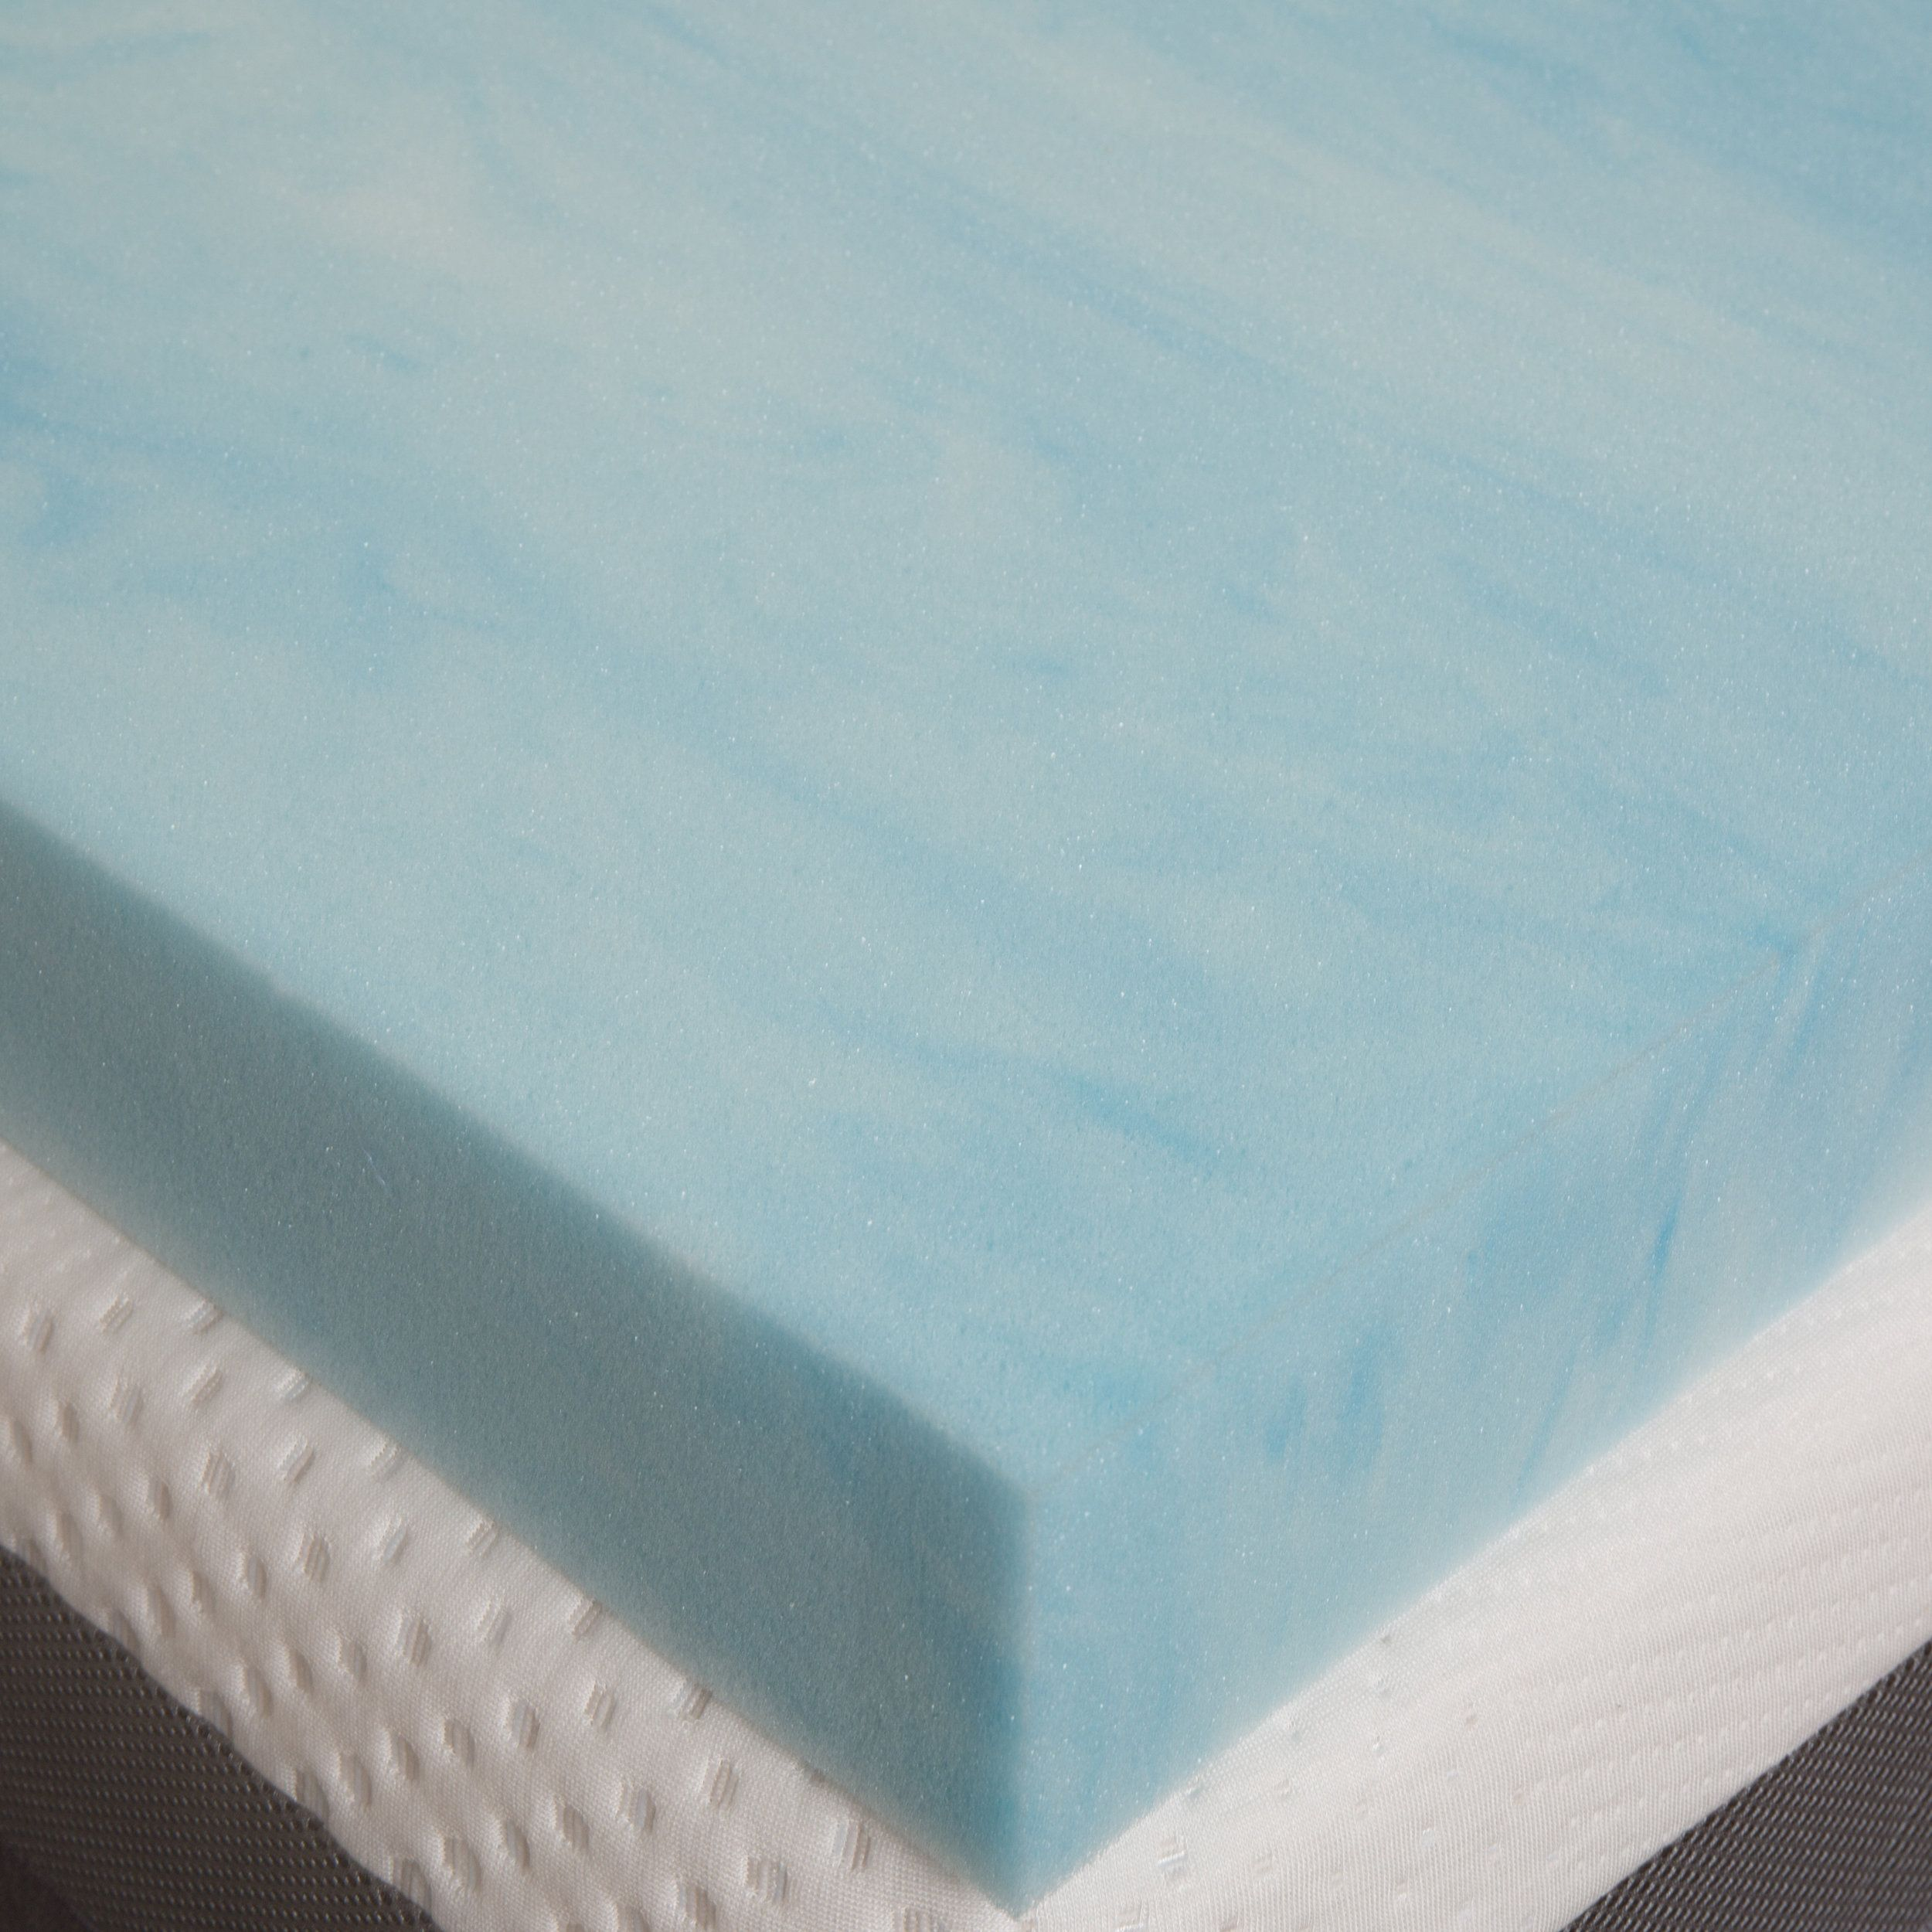 slumber solutions choose your comfort 4 inch gel memory foam